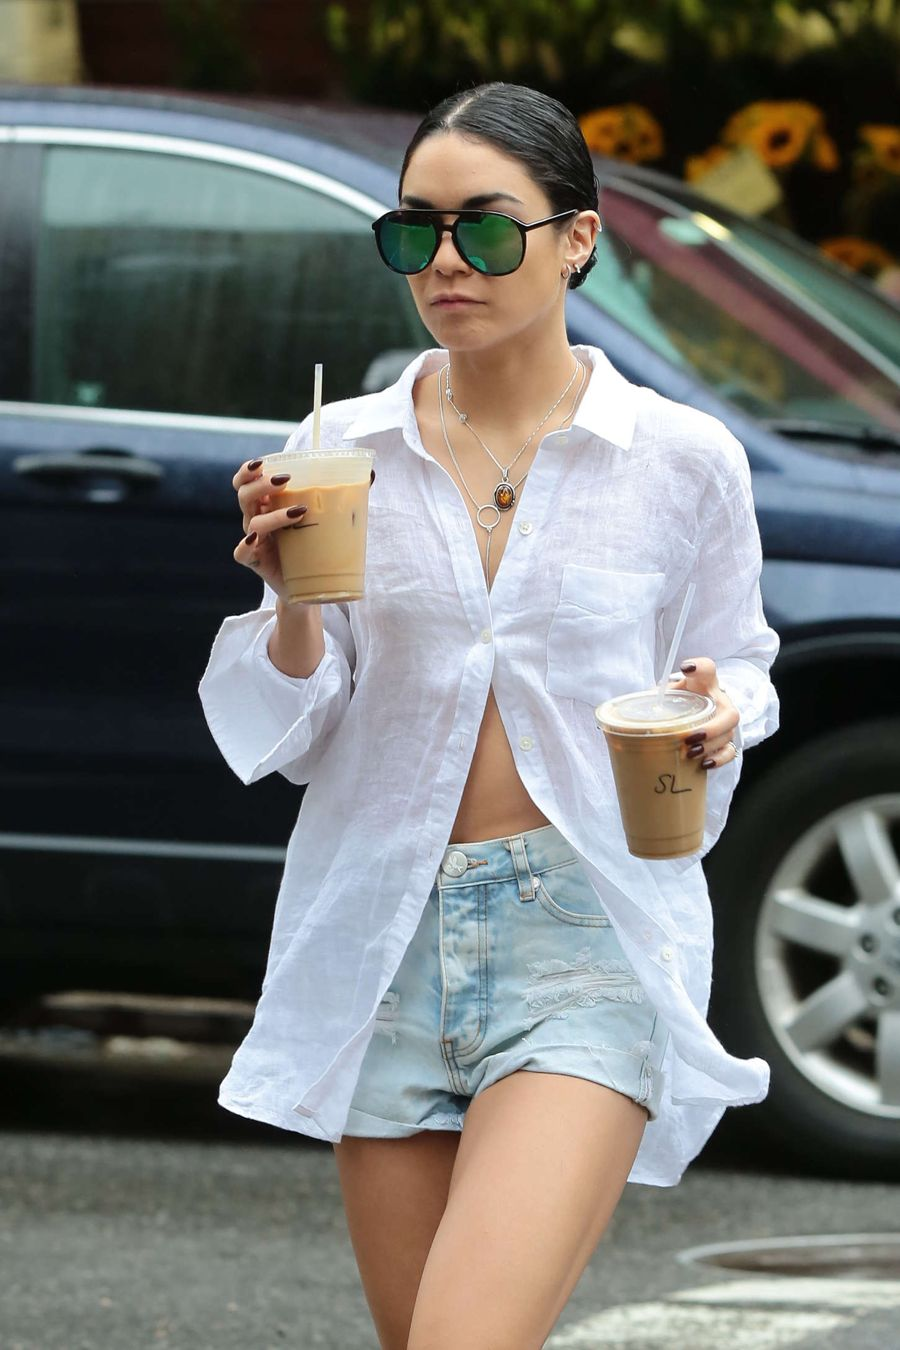 Vanessa Hudgens in Shorts and Shirts Out in NYC